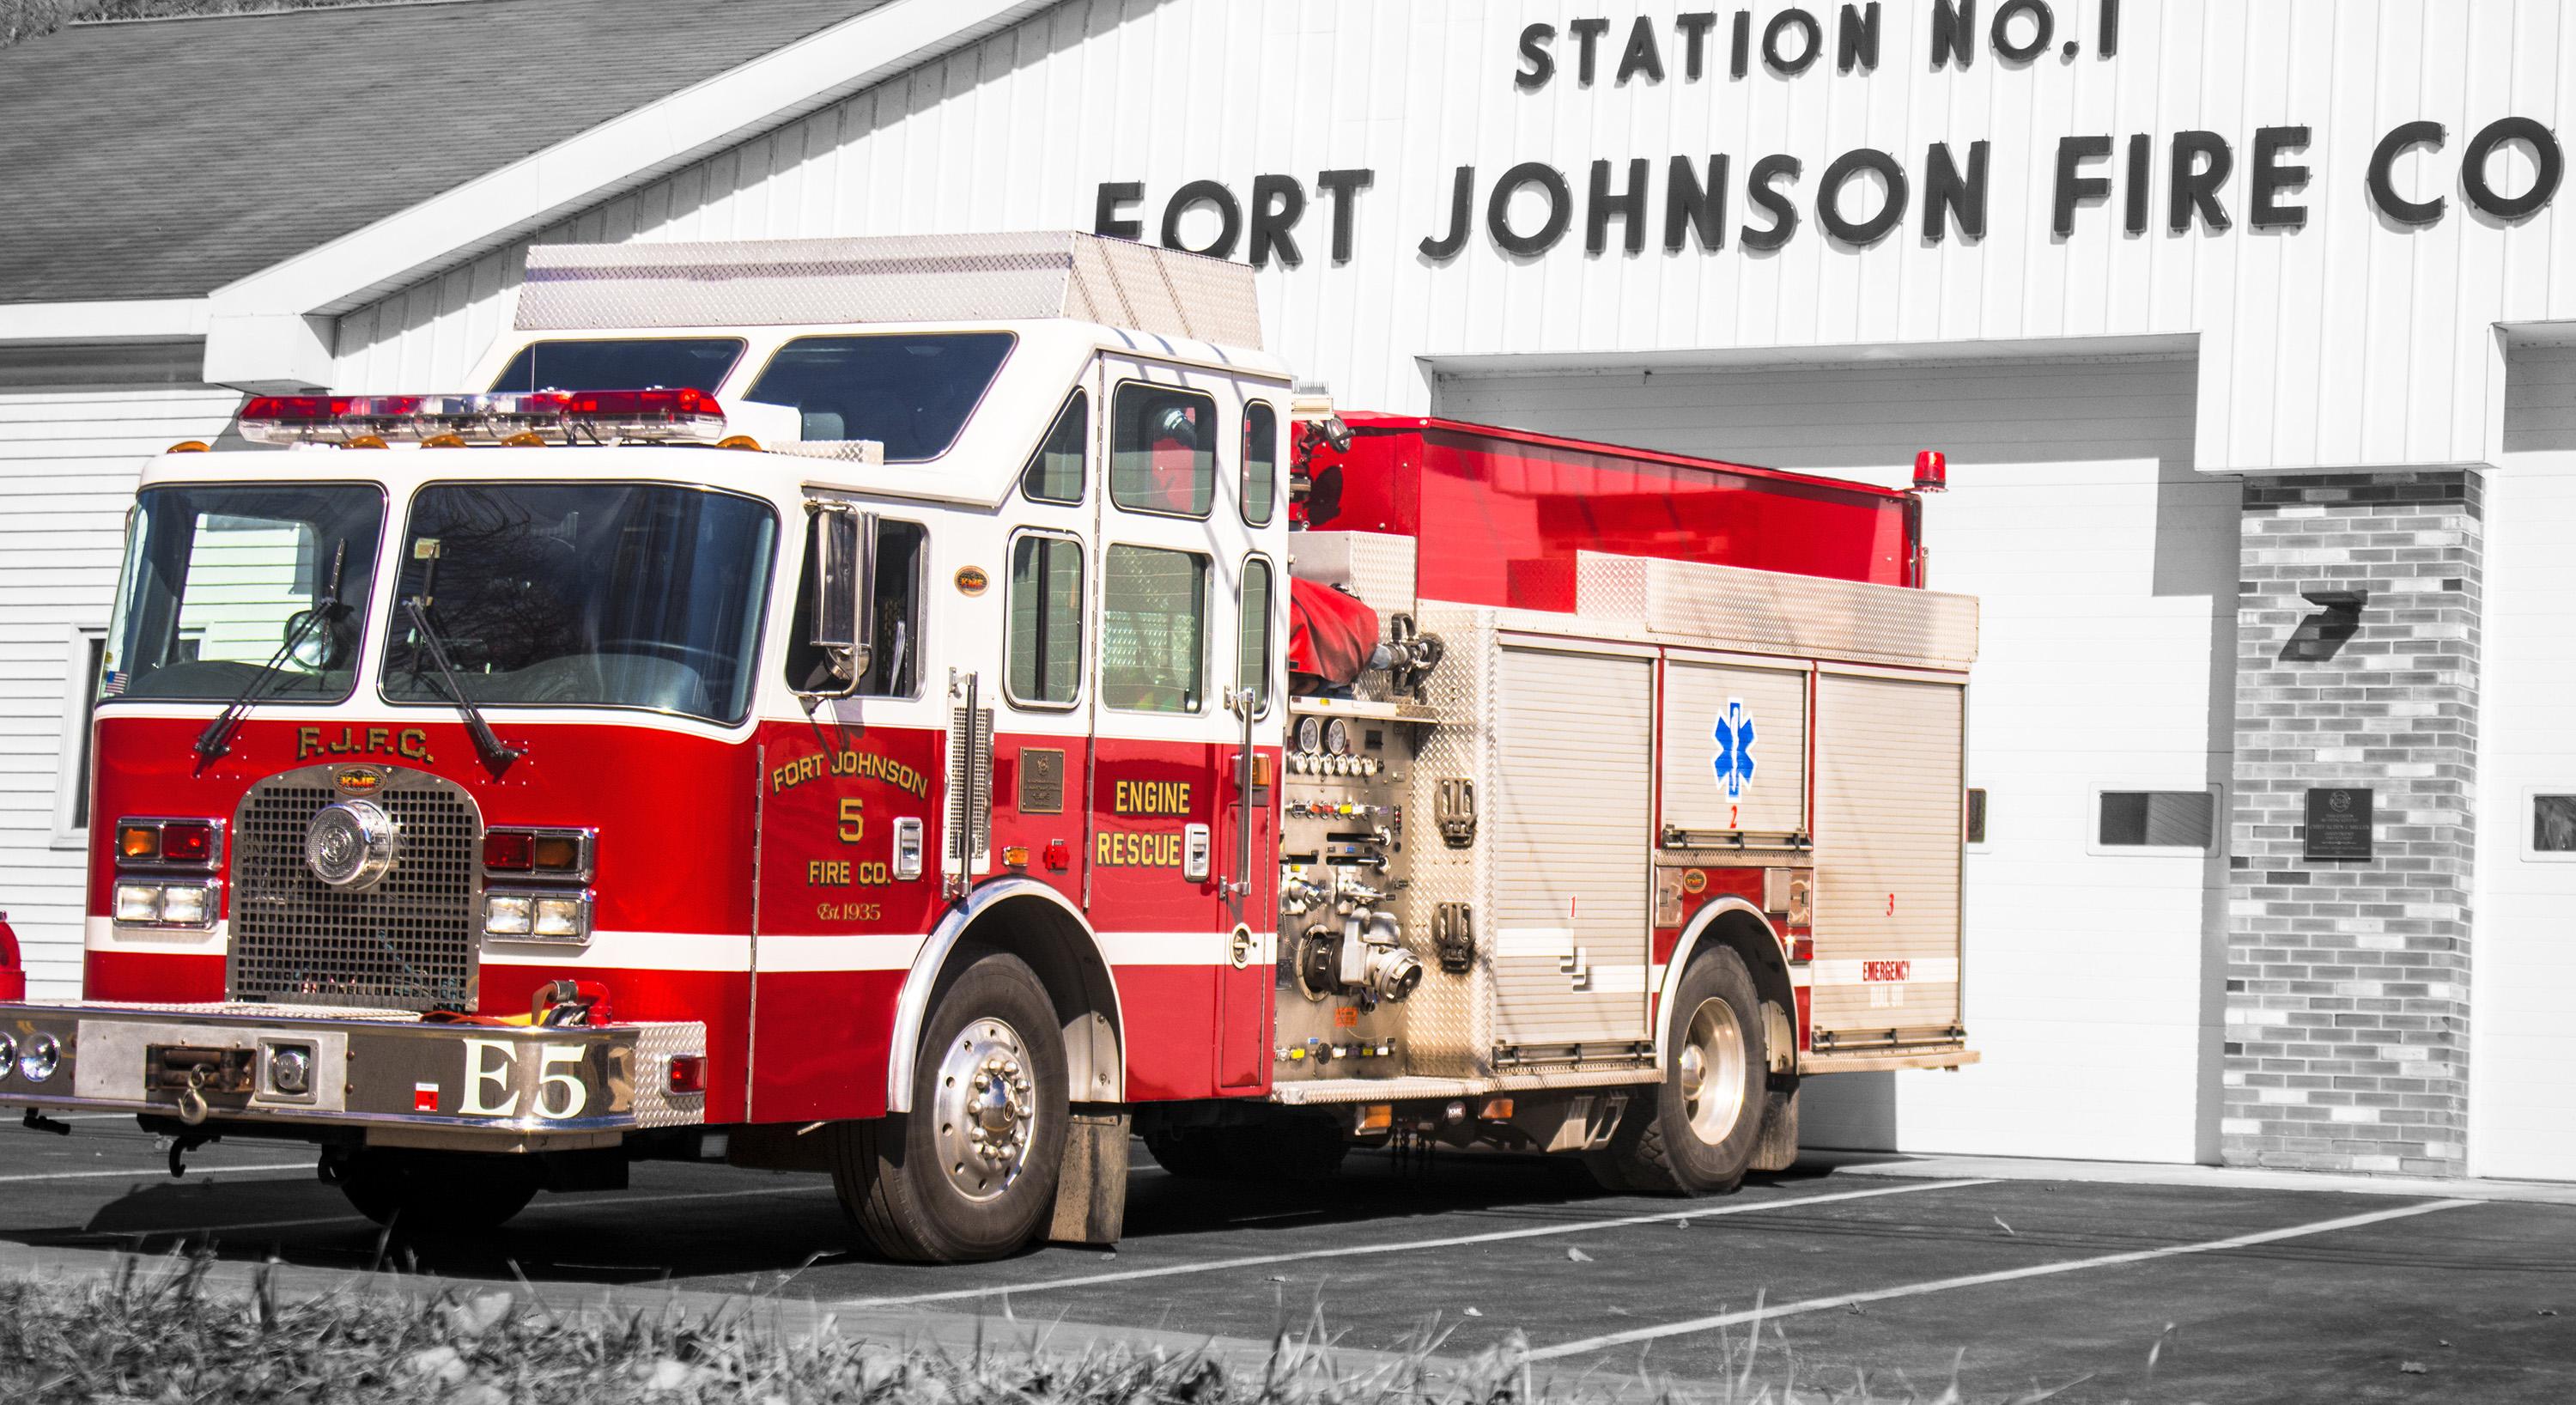 A photo of Engine 5, a fire truck, with selective color showing a back background.